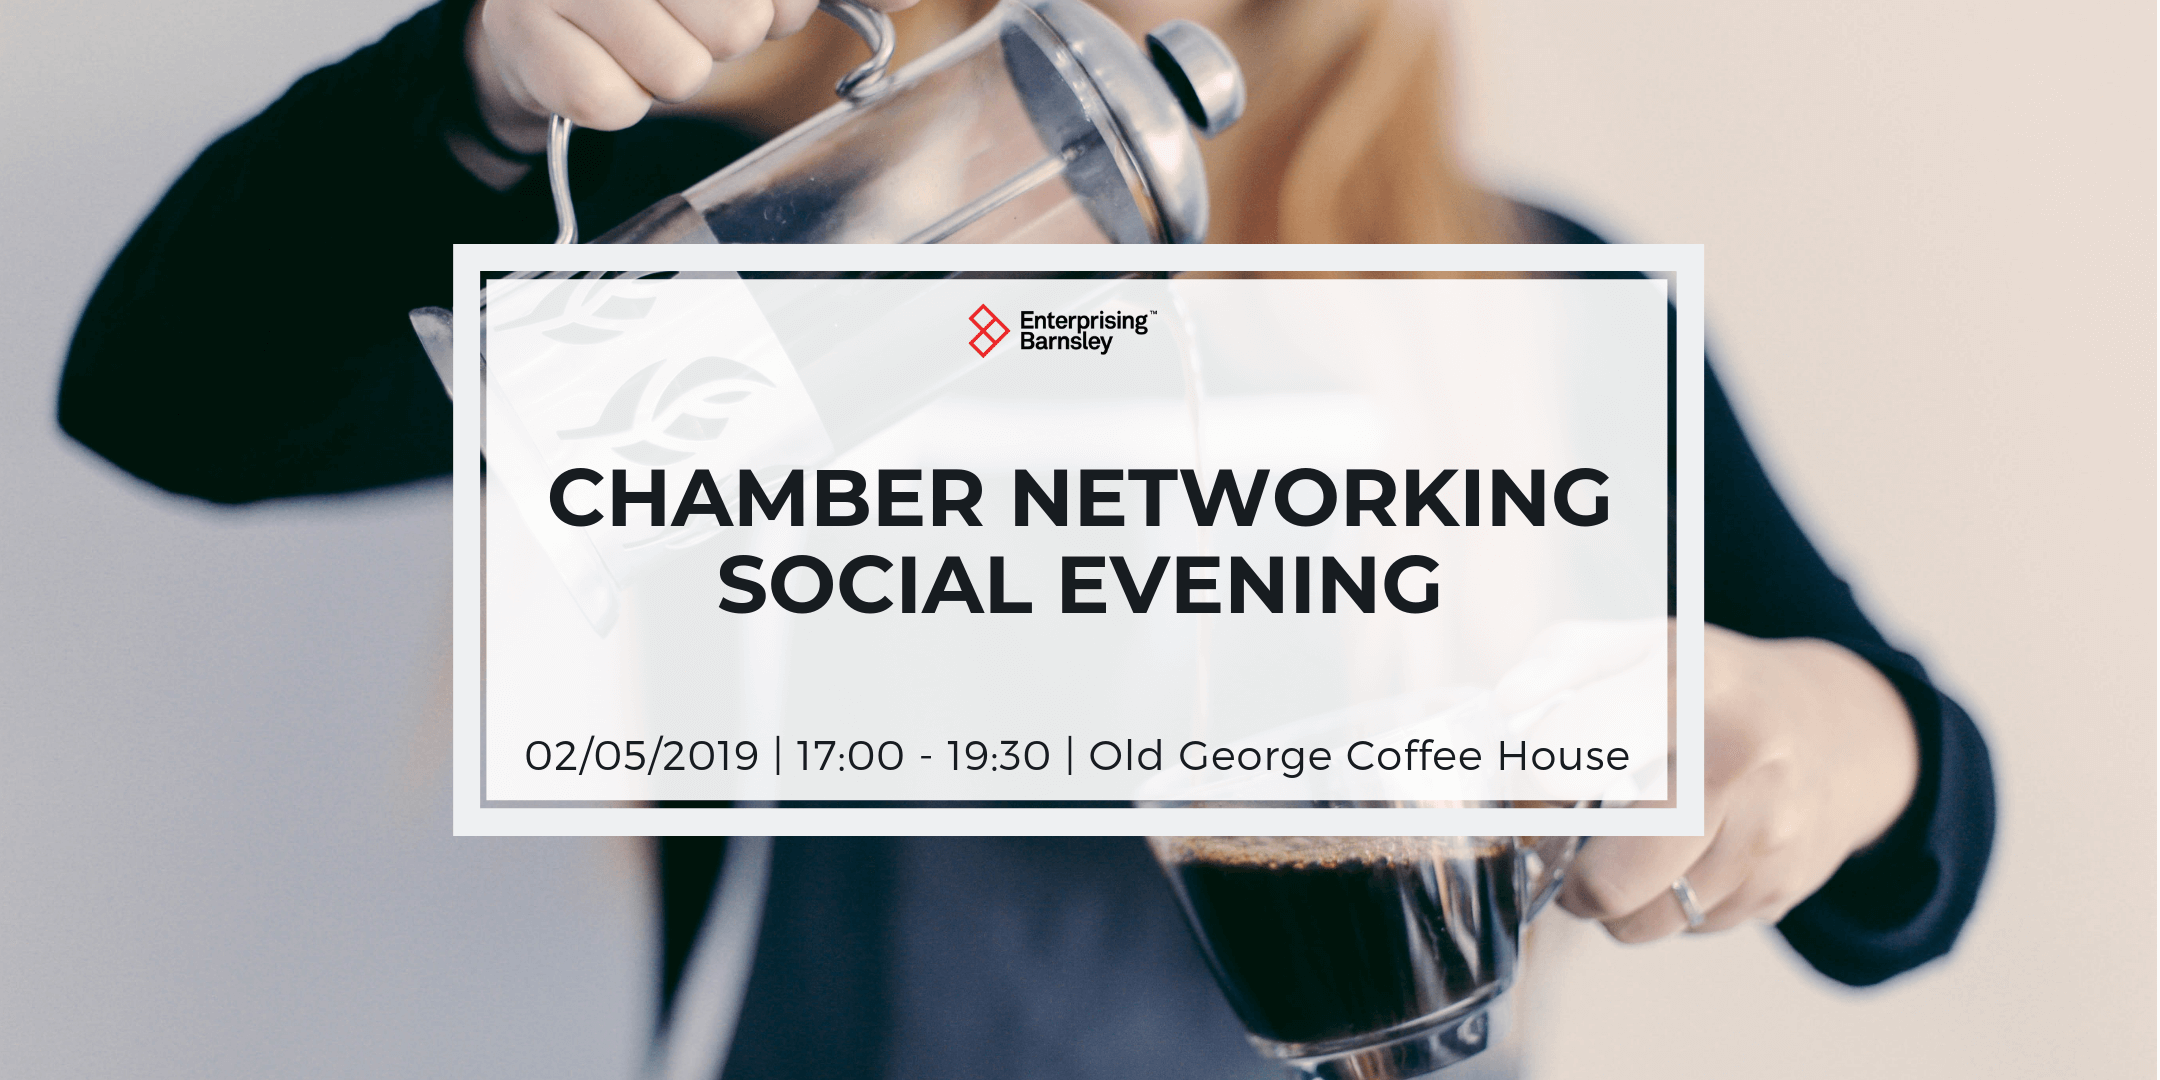 Chamber Networking Social Evening